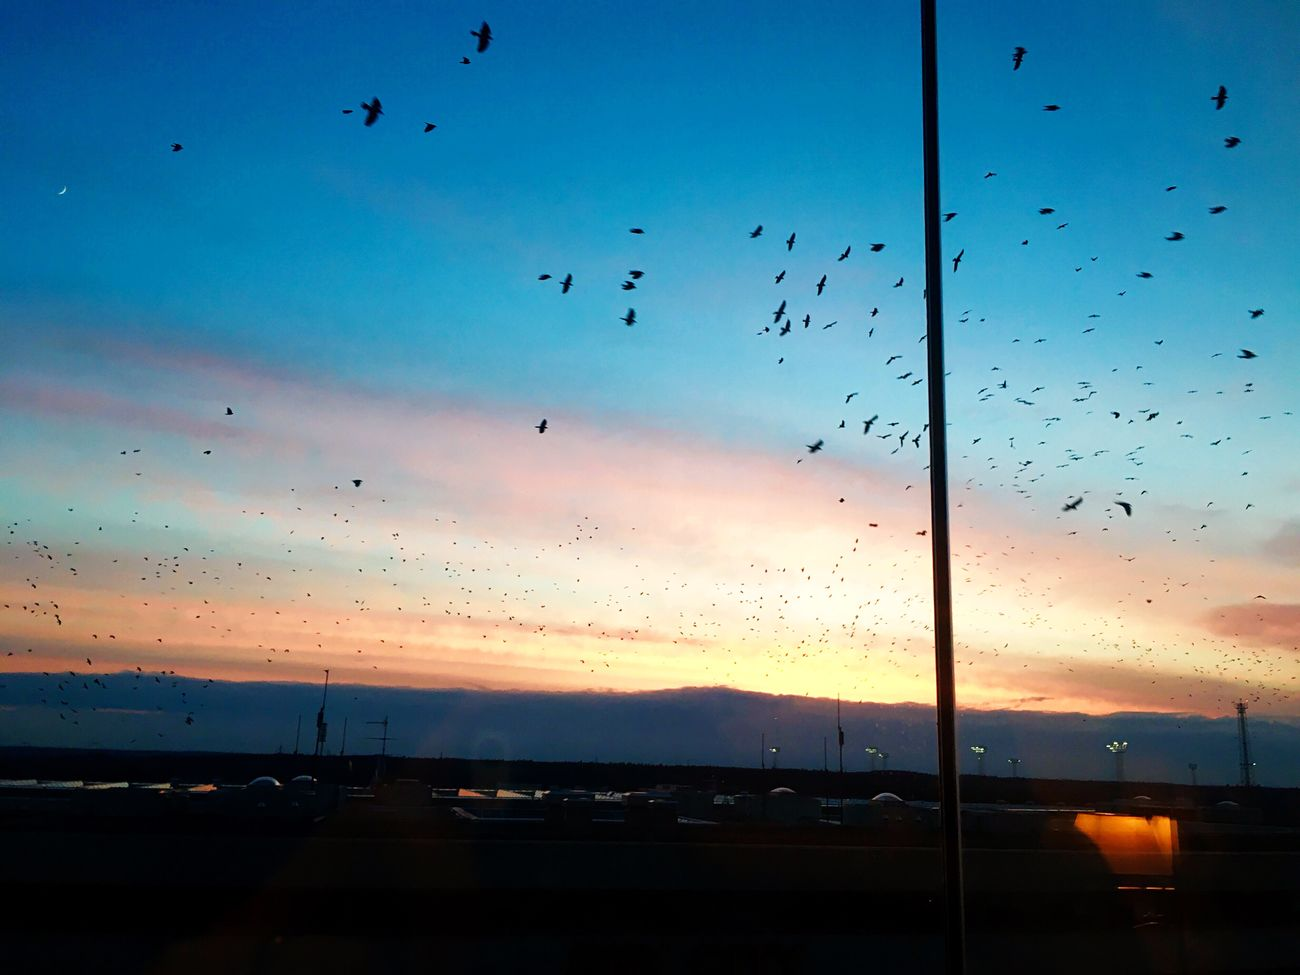 Flying Large Group Of Animals Sunset Flock Of Birds Bird Beauty In Nature Sky Nature Animal Themes Scenics Animals In The Wild Water Silhouette Migrating No People Tranquility Mid-air Tranquil Scene Cloud - Sky Sea Arlanda Airport